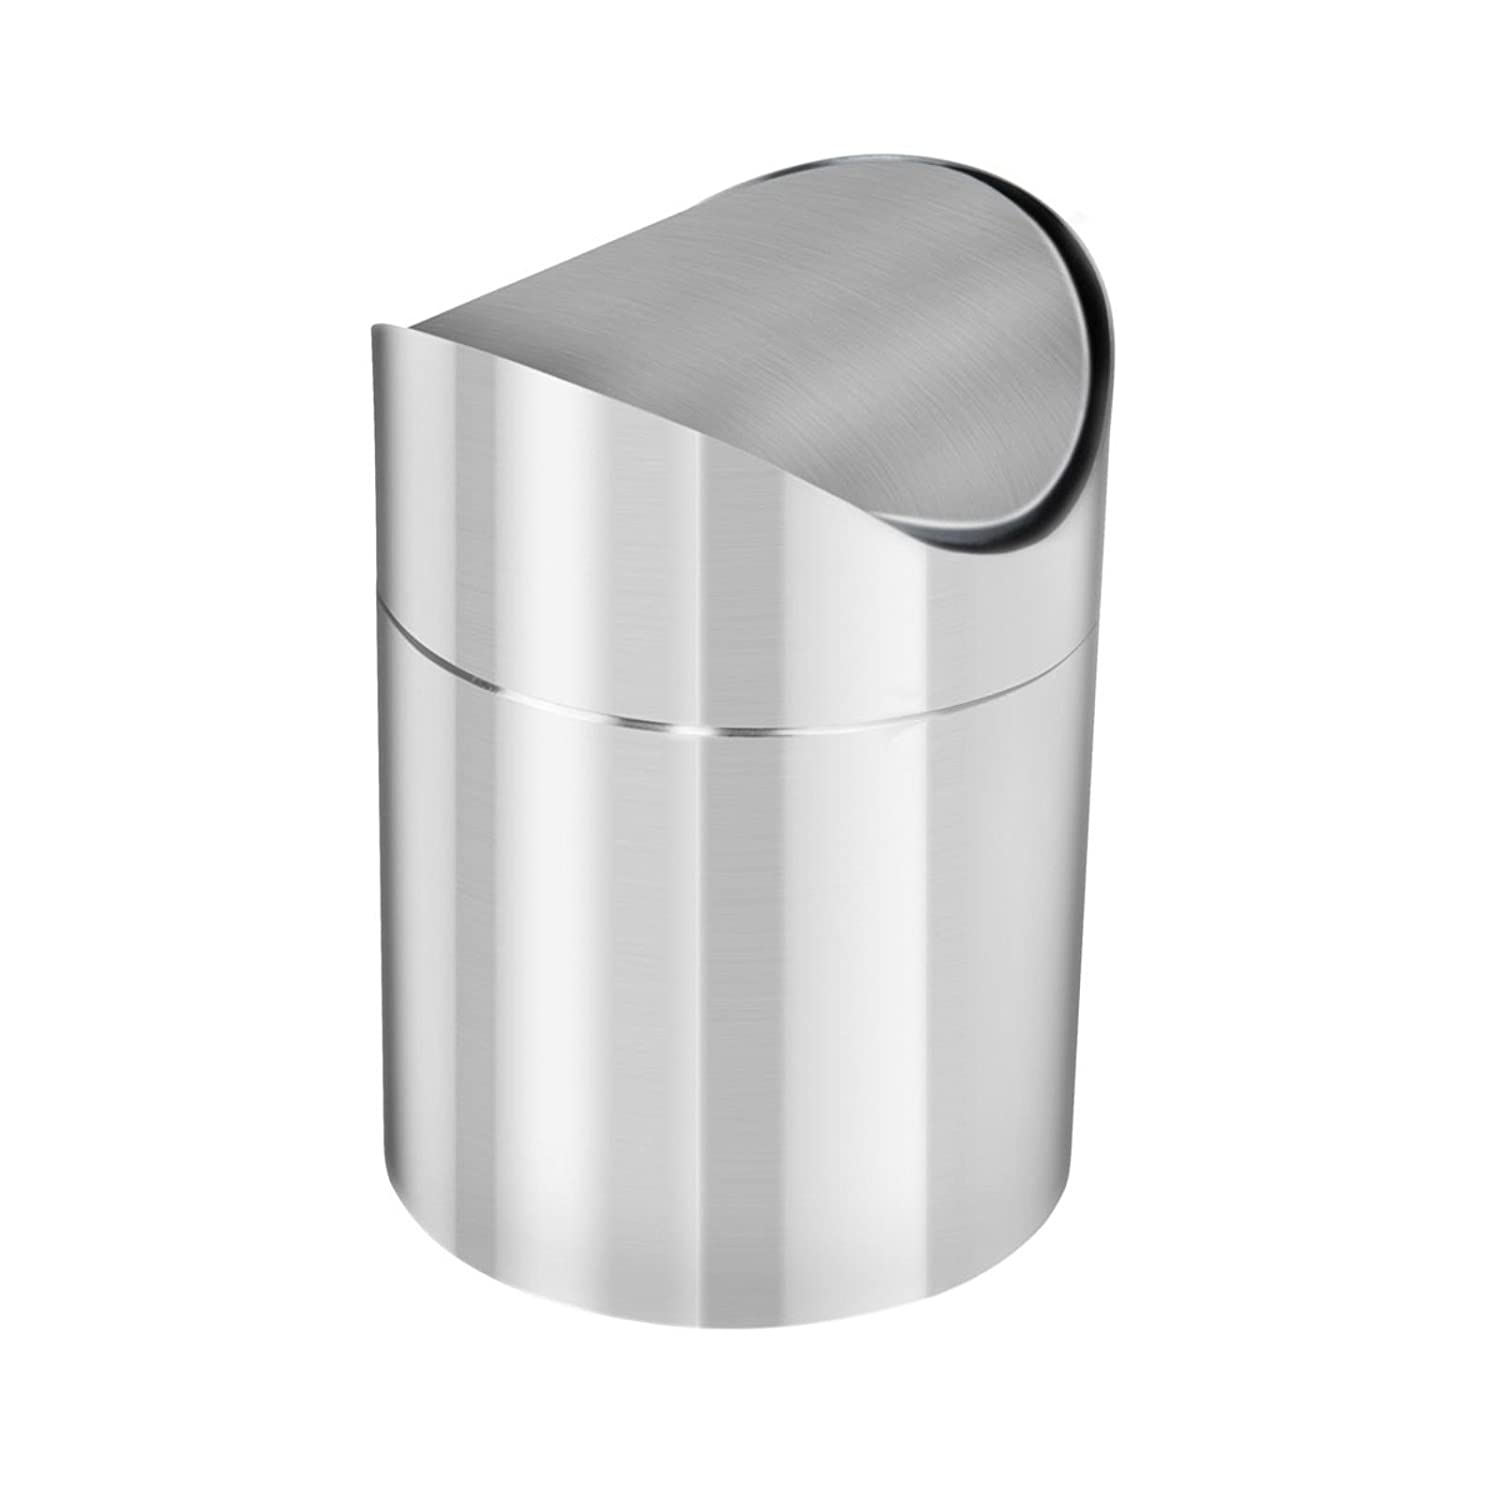 GEEZY 1.5L Stainless Steel Table Top Waste Recycling Rubbish Bin Swing Lid Kitchen Bin The Magic Toy Shop